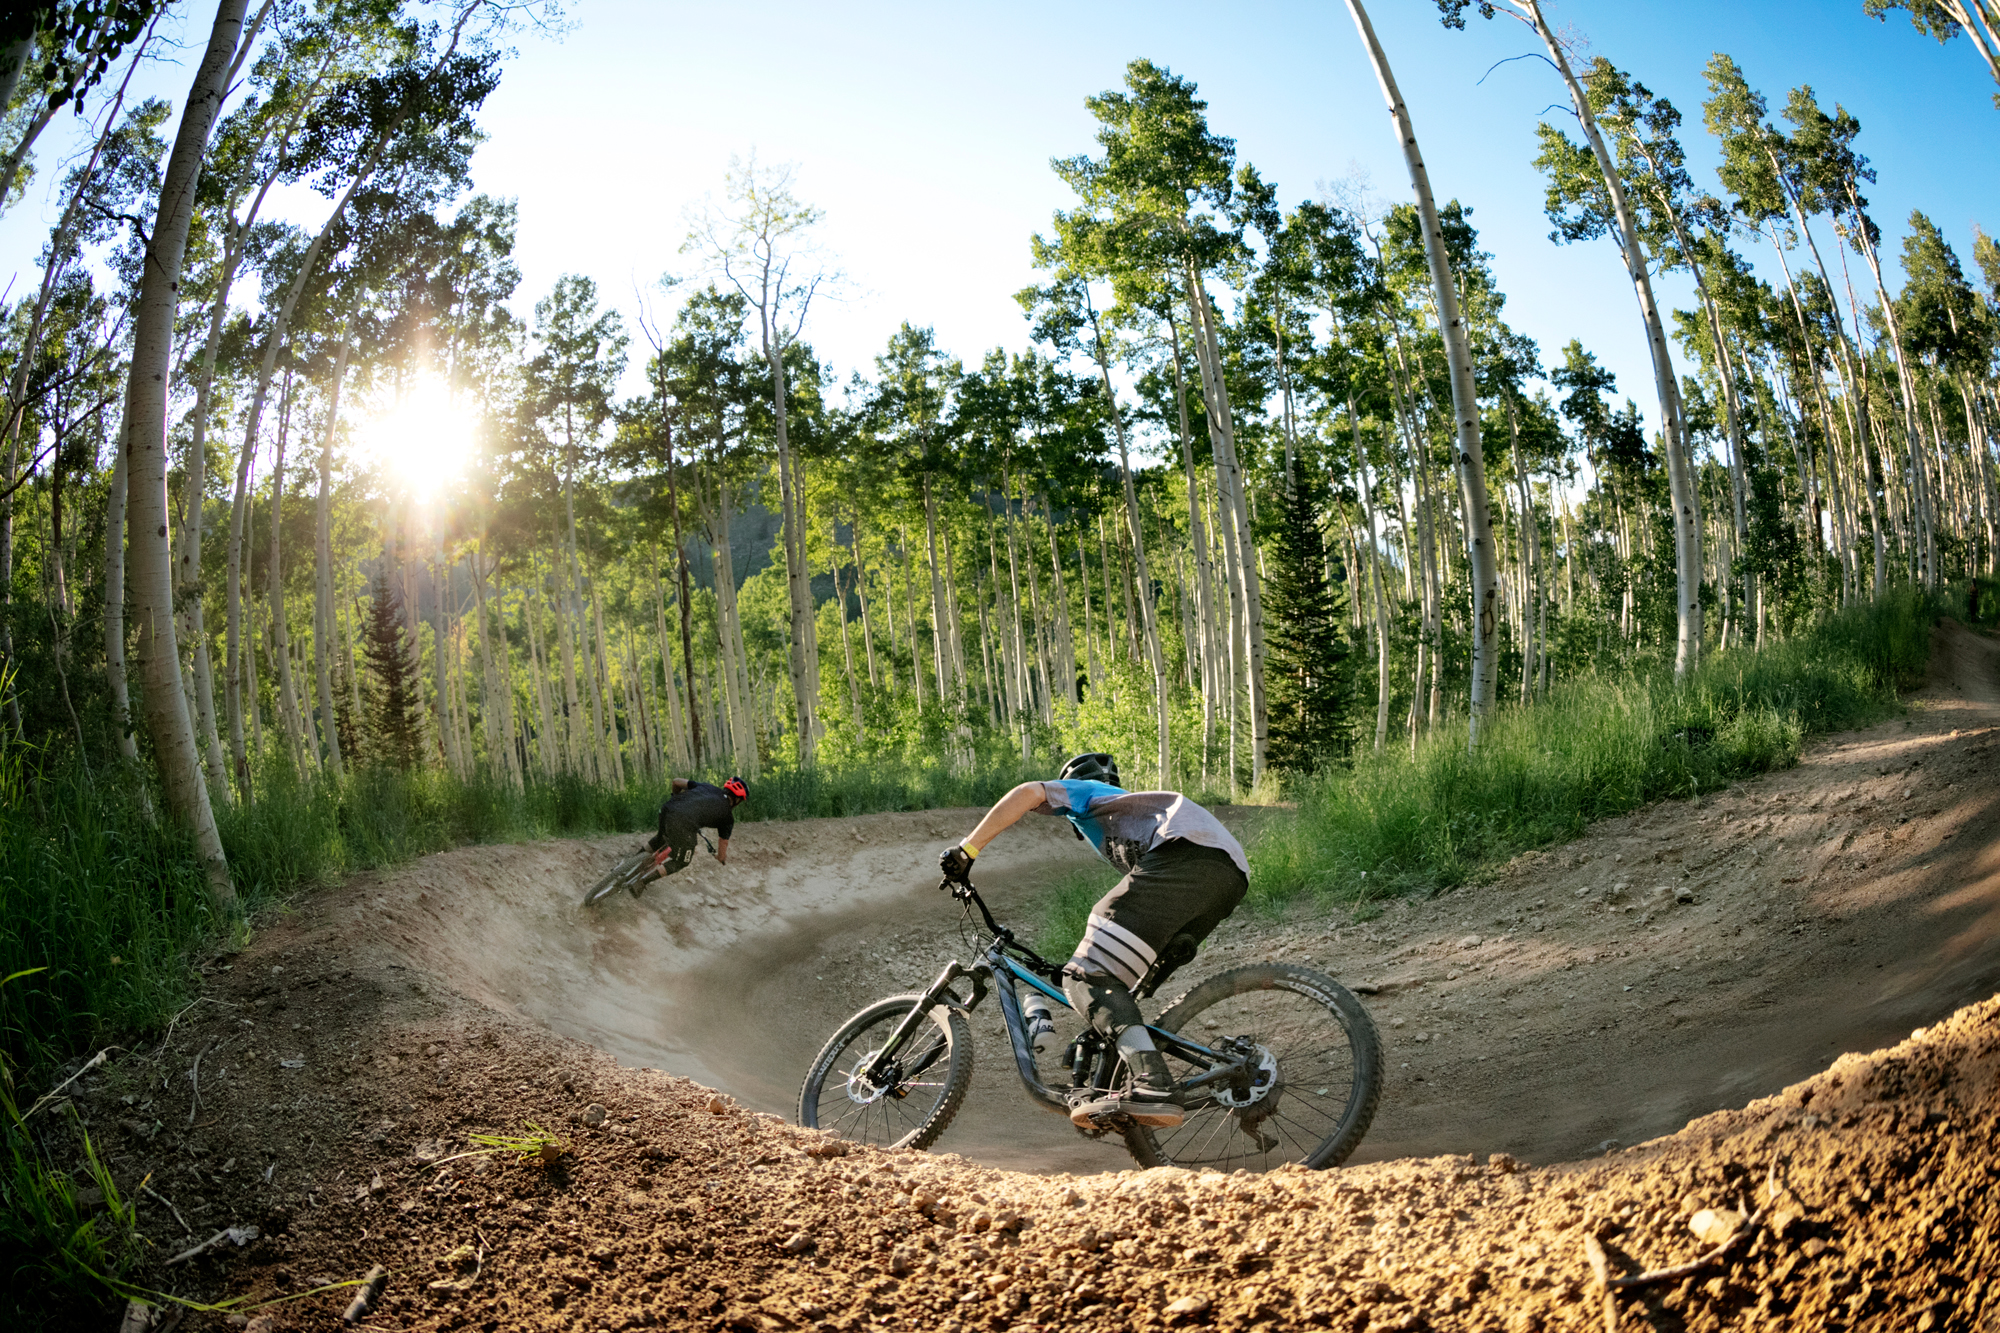 KC Deane and Reece Wallace at Deer Valley, Utah